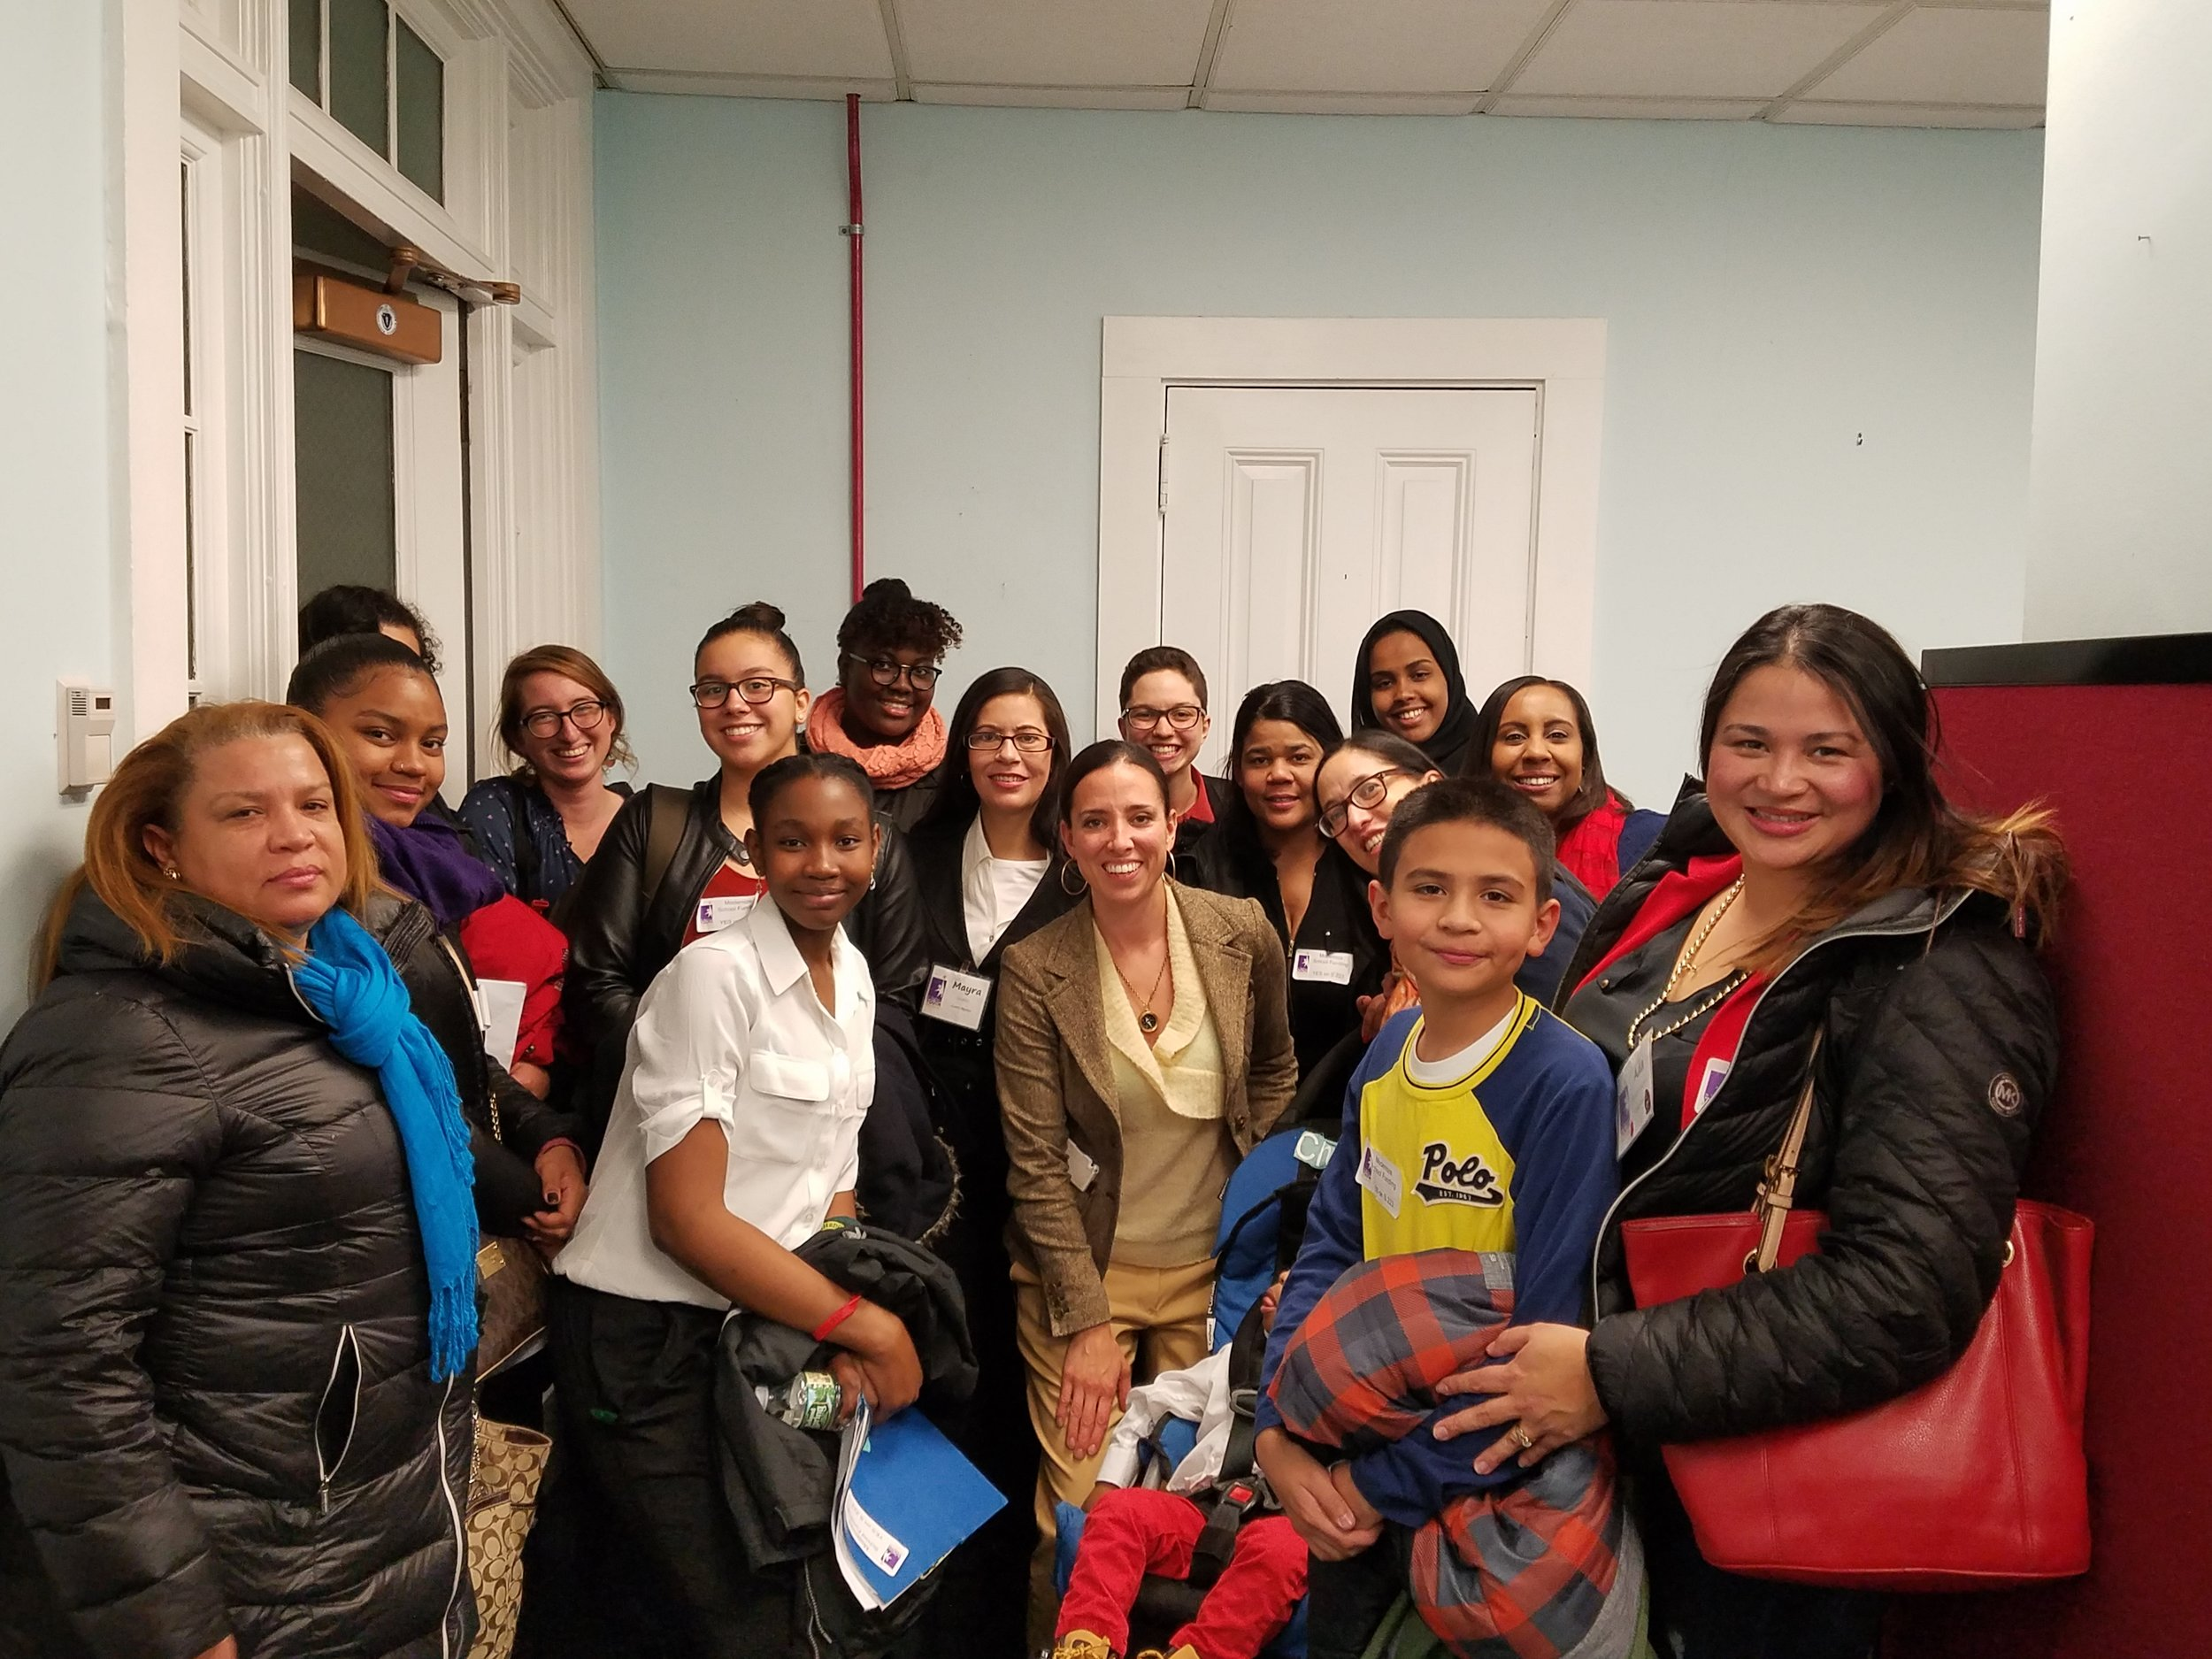 PHOTO: Intergenerational Organizing team meeting with State Senator Sonia Chang Diaz, author of the Bill to Modernize the Foundation Budget for the 21st Century